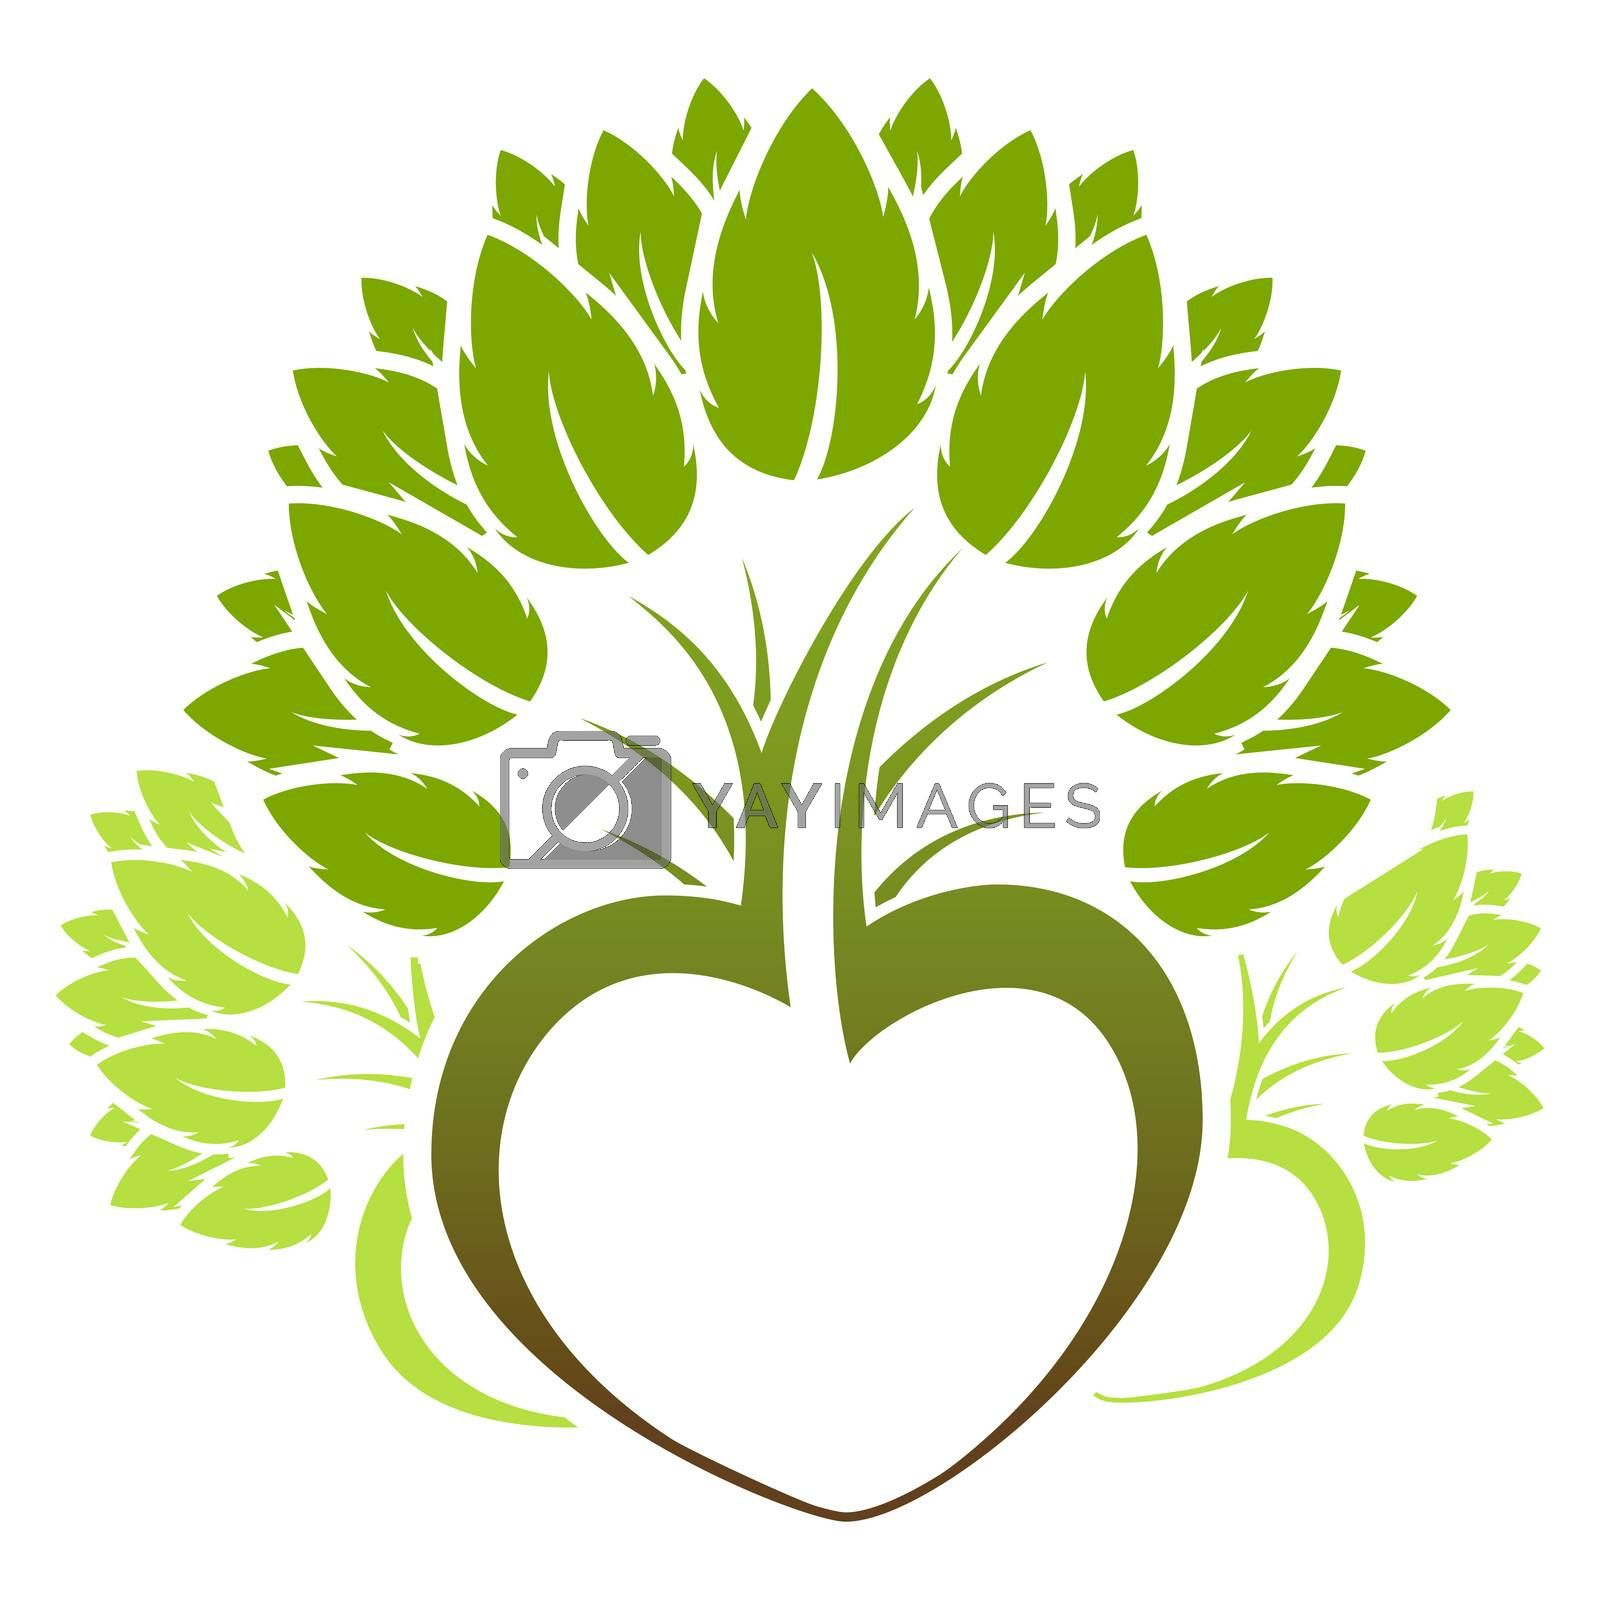 Abstract green tree icon logo by WaD